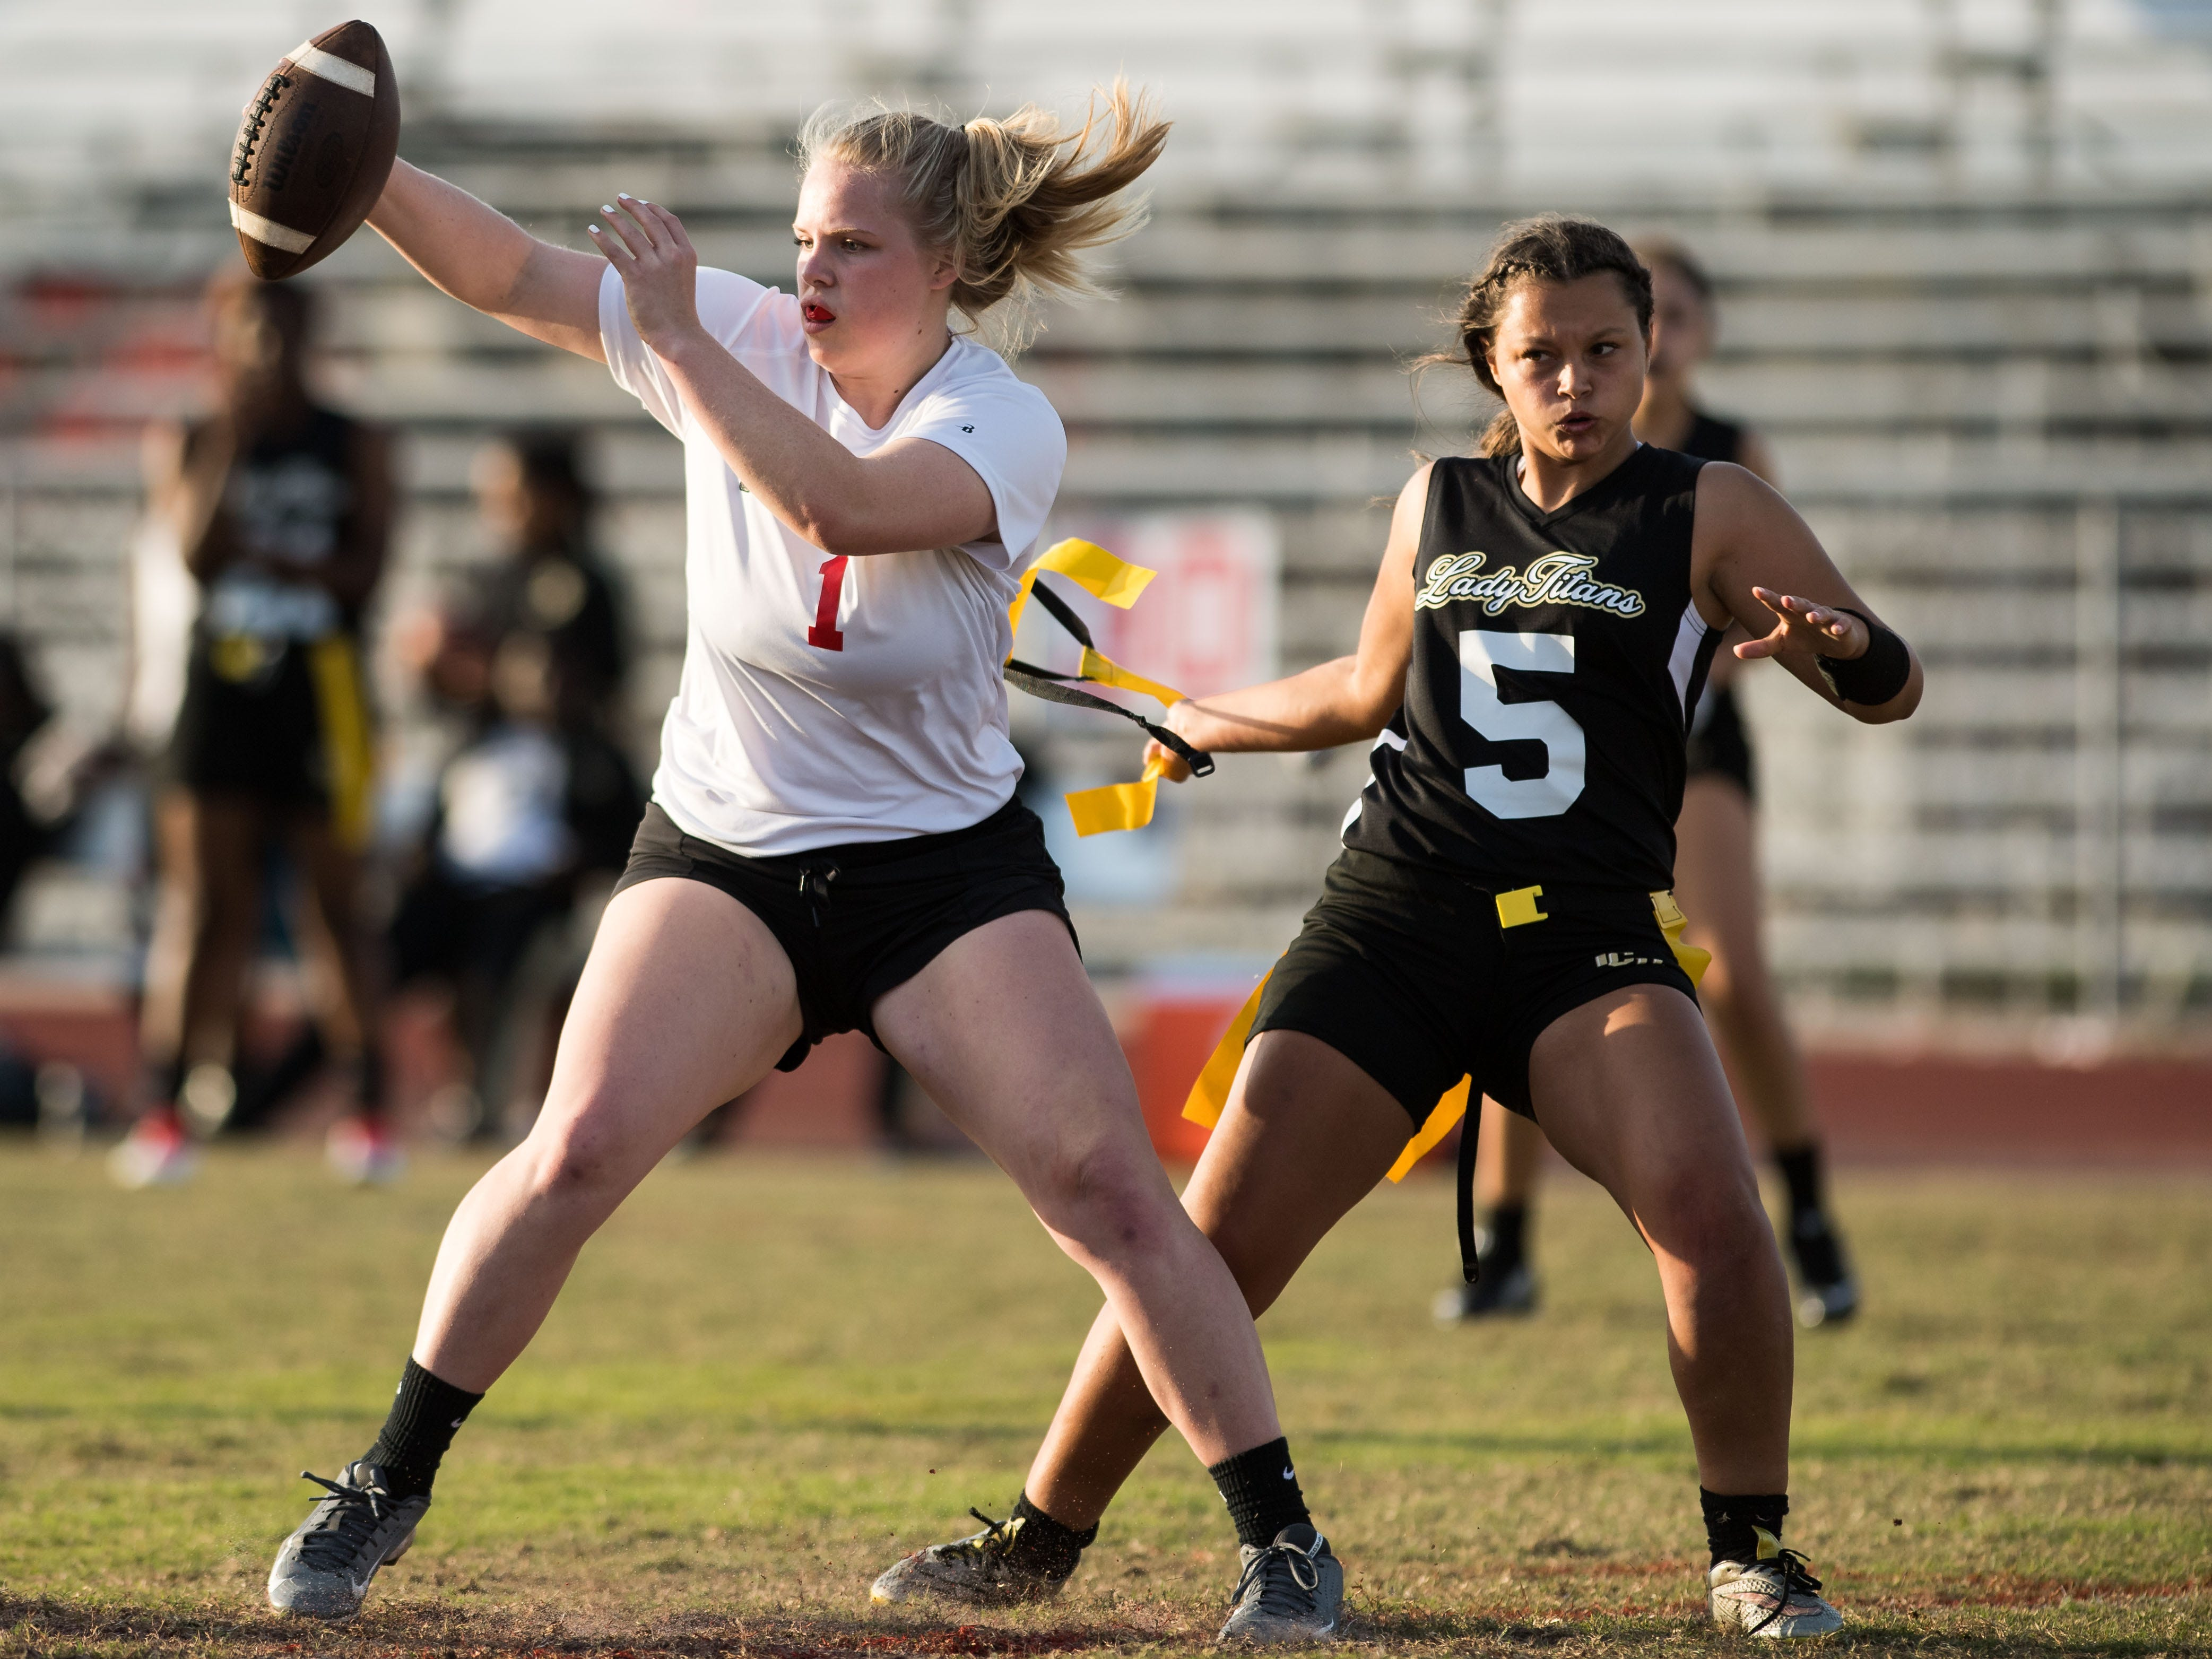 Vero Beach's Audra Teske (left) reaches for extra yards before being downed by Treasure Coast's Victoria Pitsirelos during a drive in the fourth quarter of the high school flag football game Wednesday, March 13, 2019, at Vero Beach High School. Vero couldn't score on the drive, and lost 20-13 to Treasure Coast.